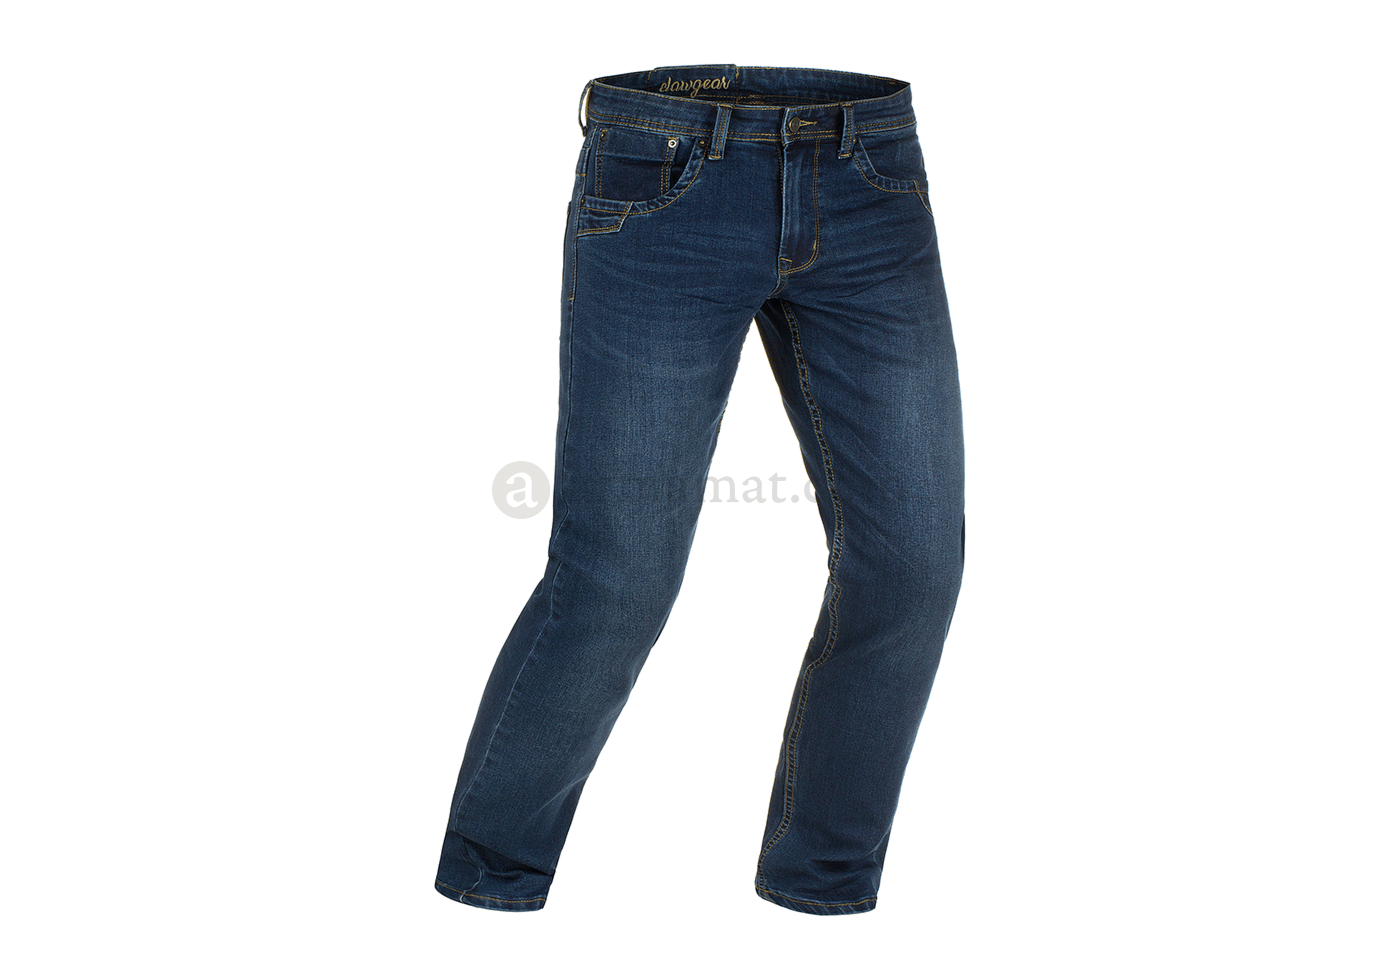 ClawGear DENIM Tactical Flex Jeans Sapphire Washed